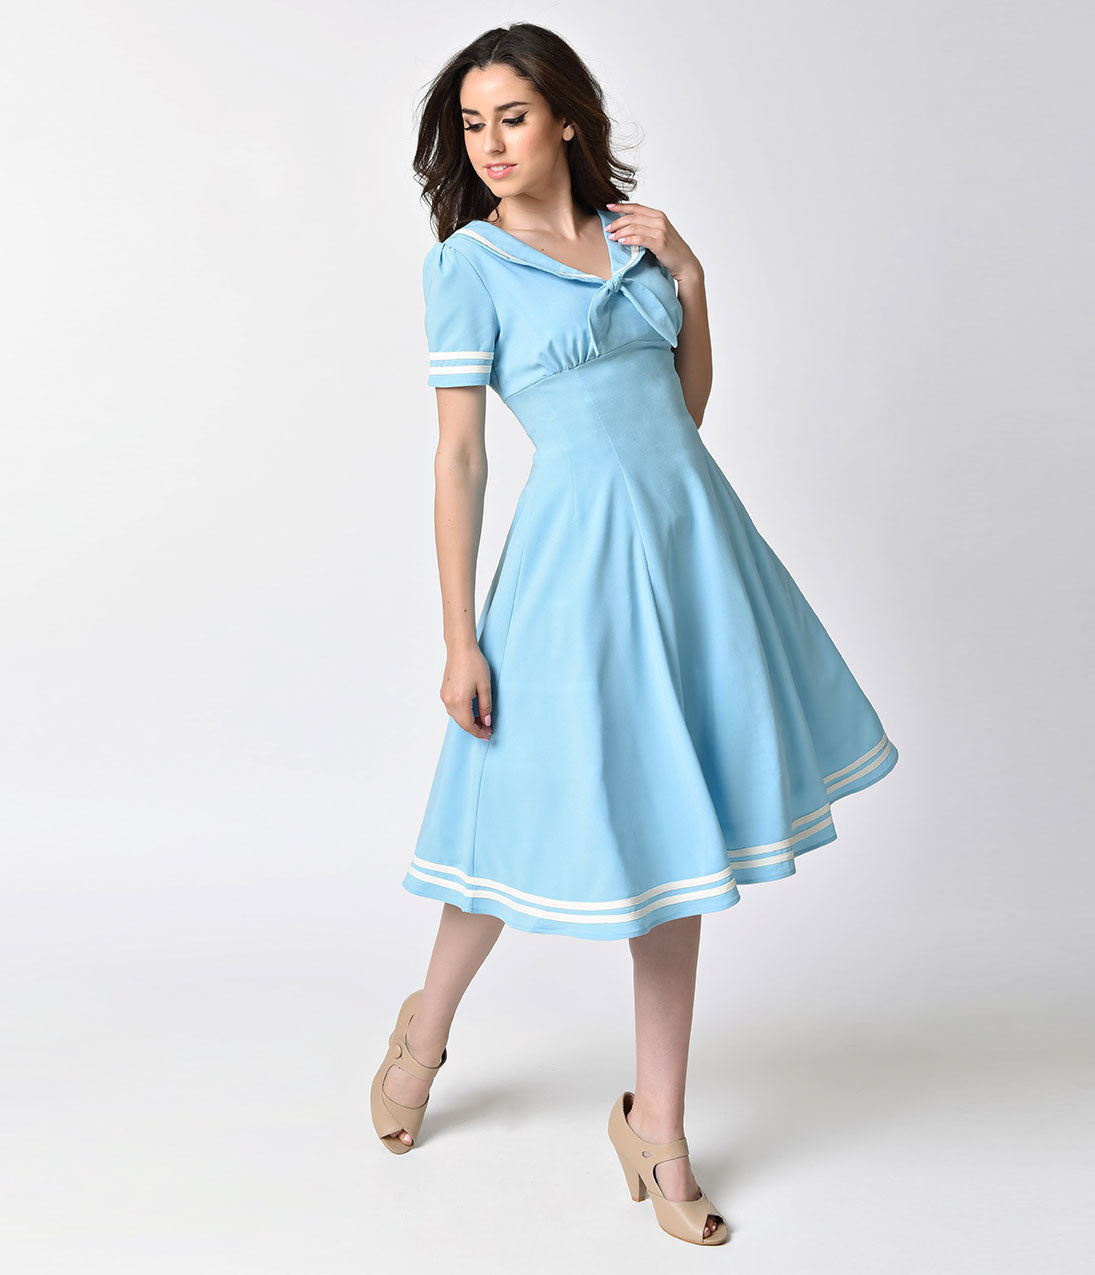 Sailor Dresses, Nautical Dress, Pin Up & WW2 Dresses Hell Bunny Retro Dusty Blue Ambleside Midi Crepe Swing Dress $50.00 AT vintagedancer.com